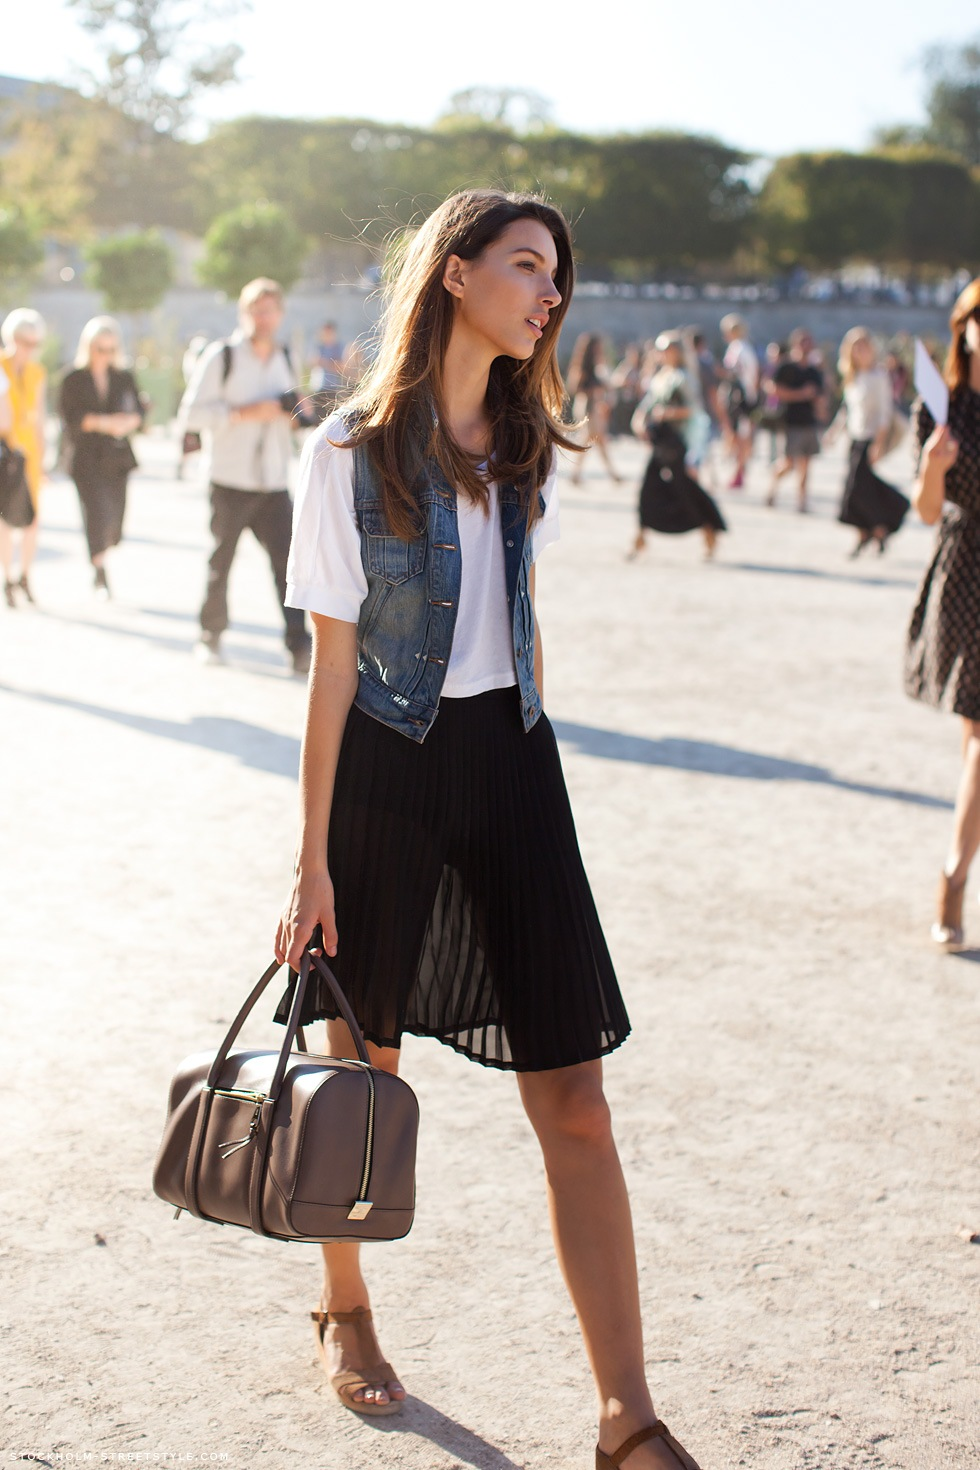 VESTS The Key To Summer Layering u2013 The Fashion Tag Blog